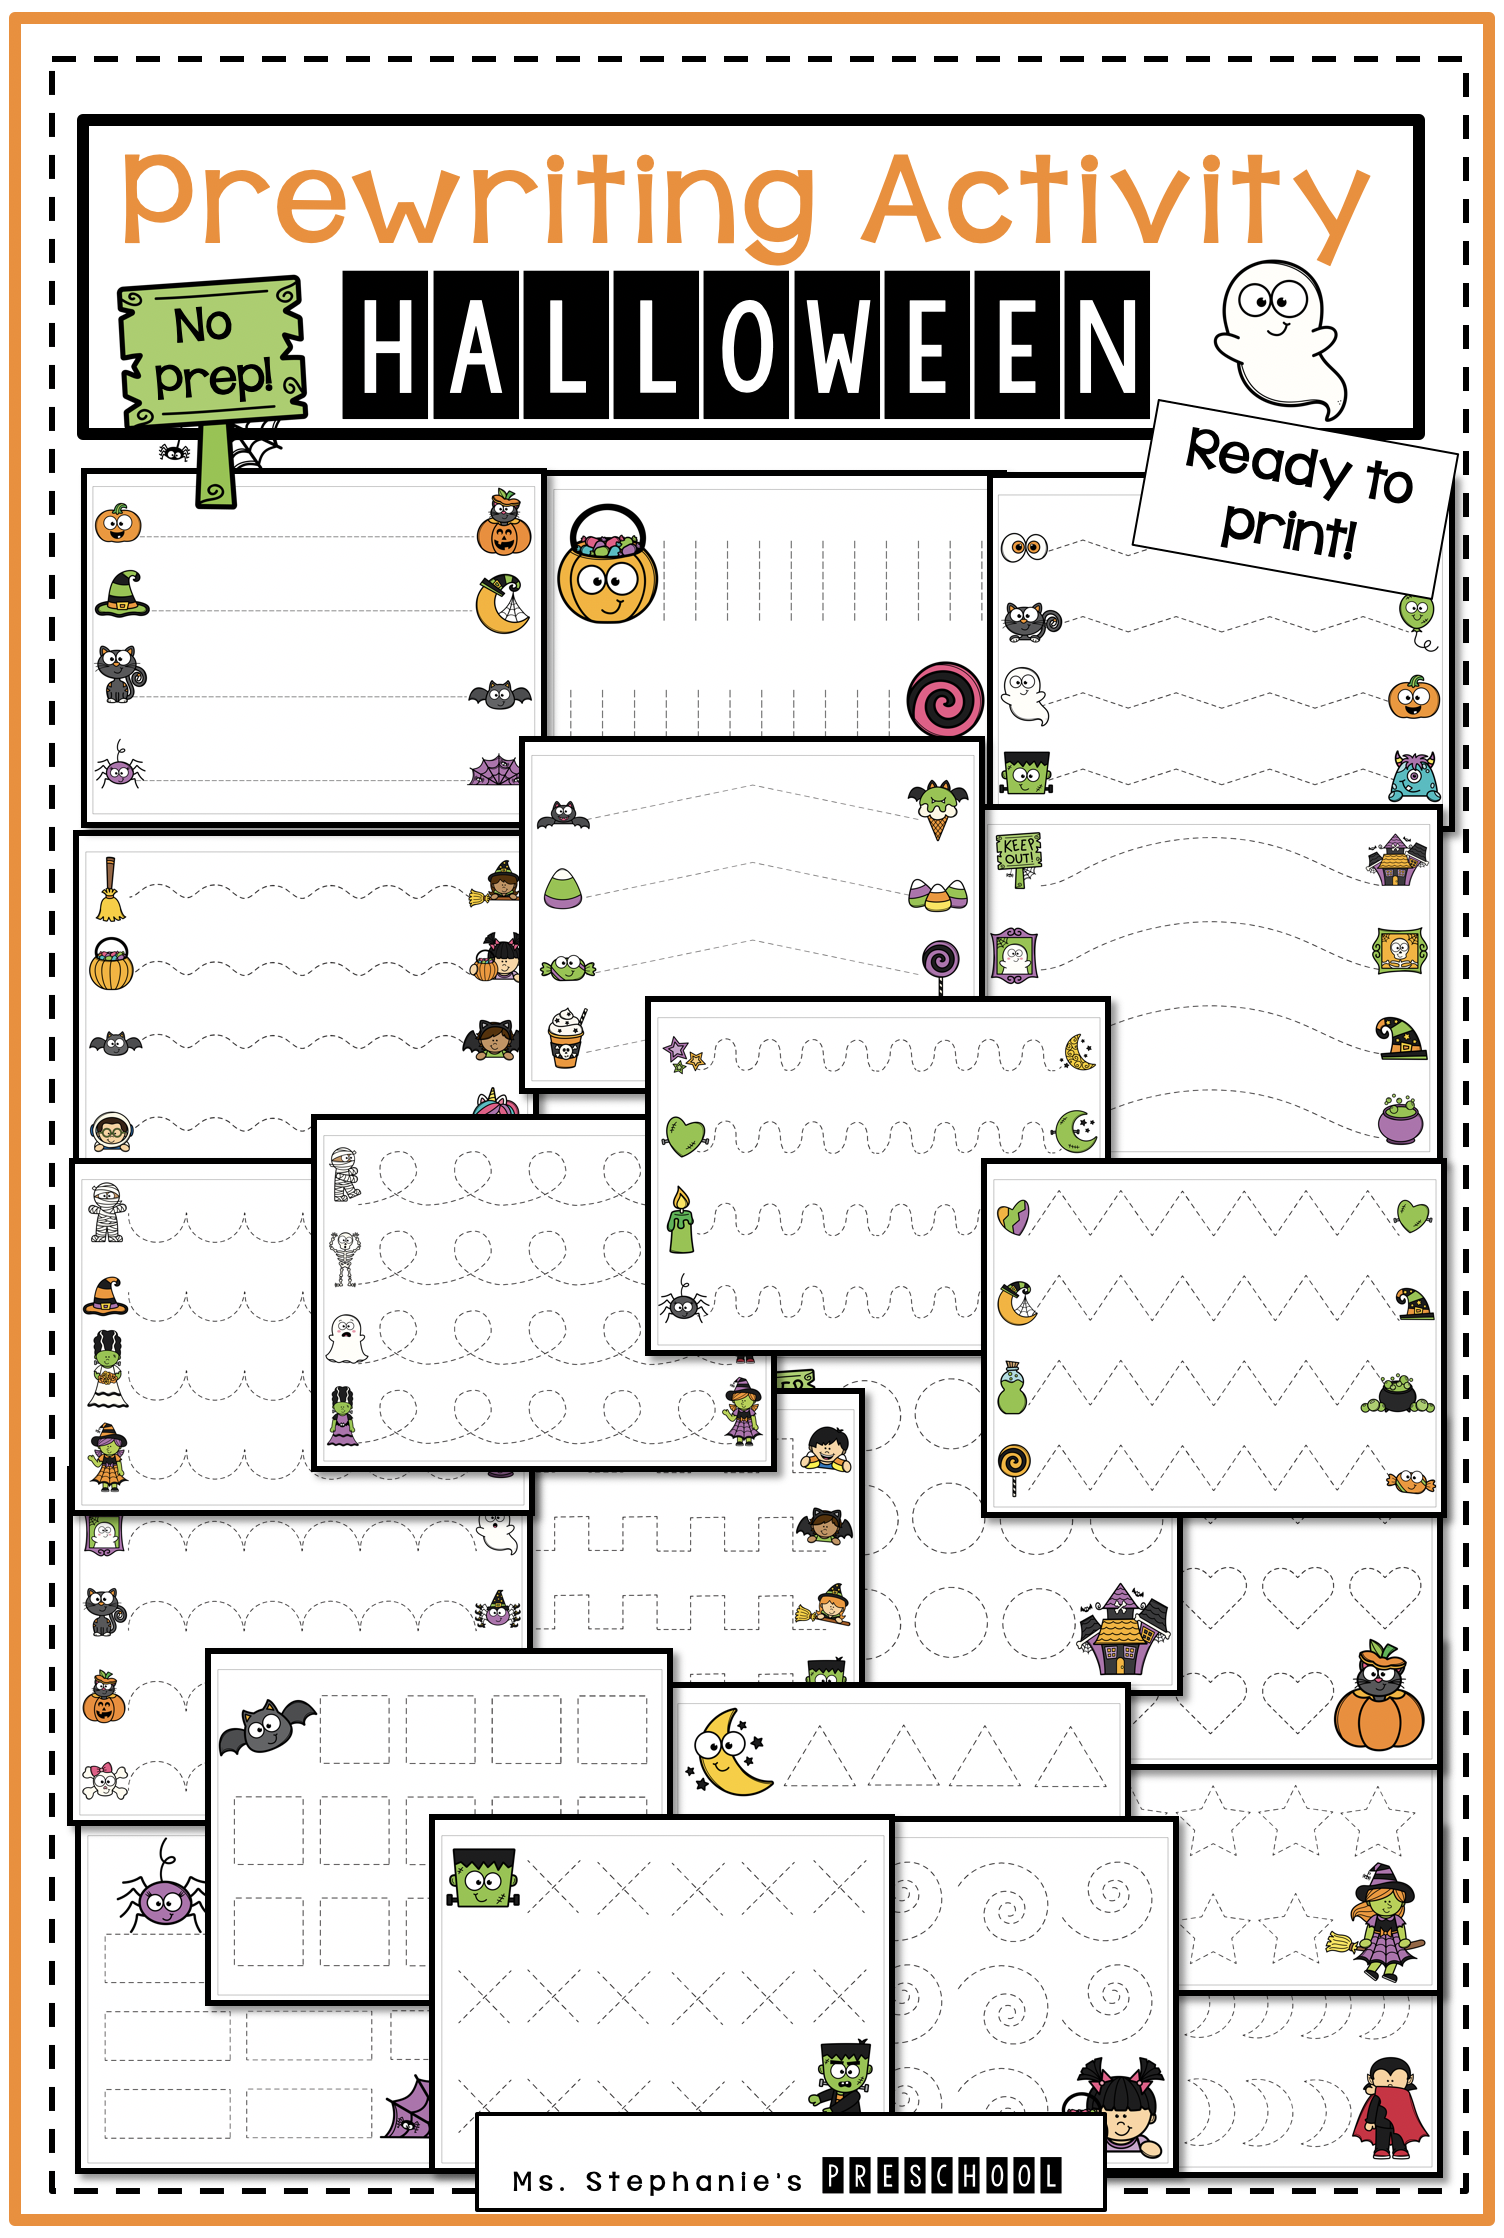 Prewriting Halloween Activity In 2020 | Pre Writing